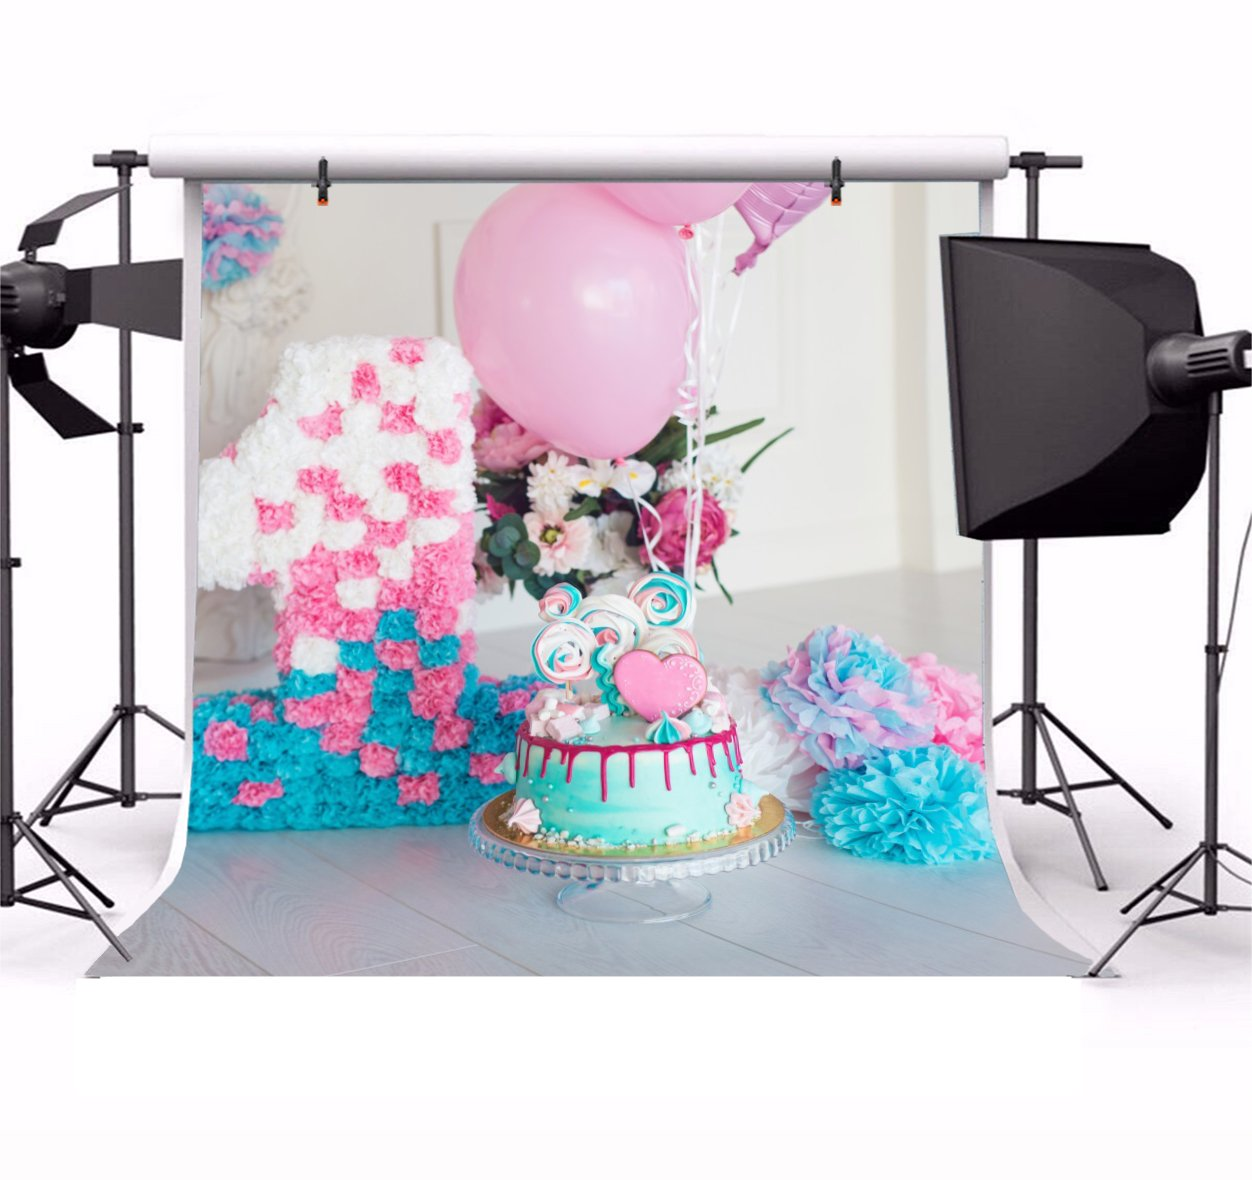 Sensational Party Backdrop Happy Birthday Birthday Backdrop Birthday Cake Funny Birthday Cards Online Aeocydamsfinfo